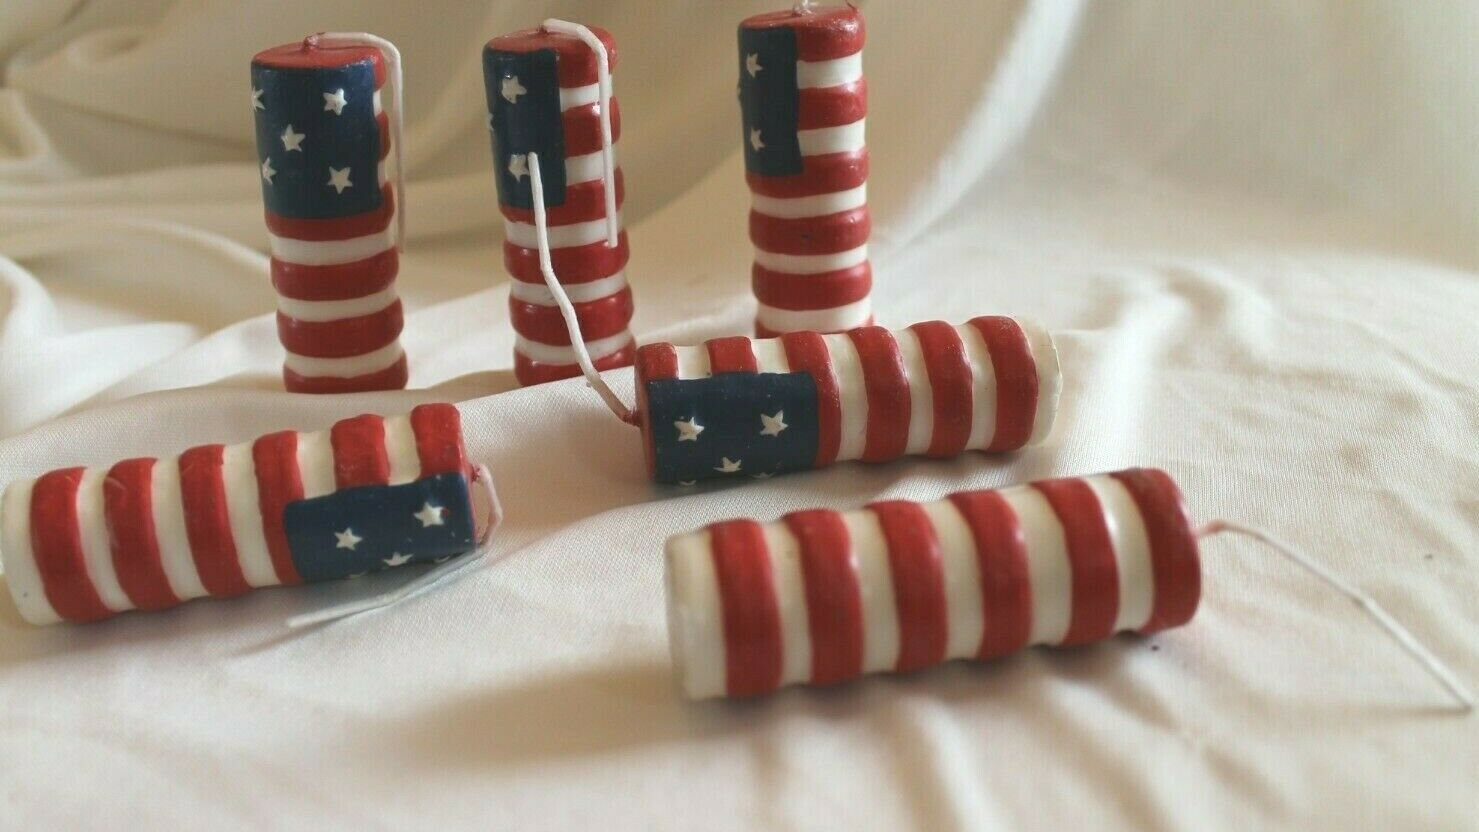 #4thofjuly #independenceday #party #parties #redwhiteandblue #patriotic #starsandstripes #thenest #nesiesnest #ebaystores #fireworks #godblessamerica #celebration #celebrate #candles #fun